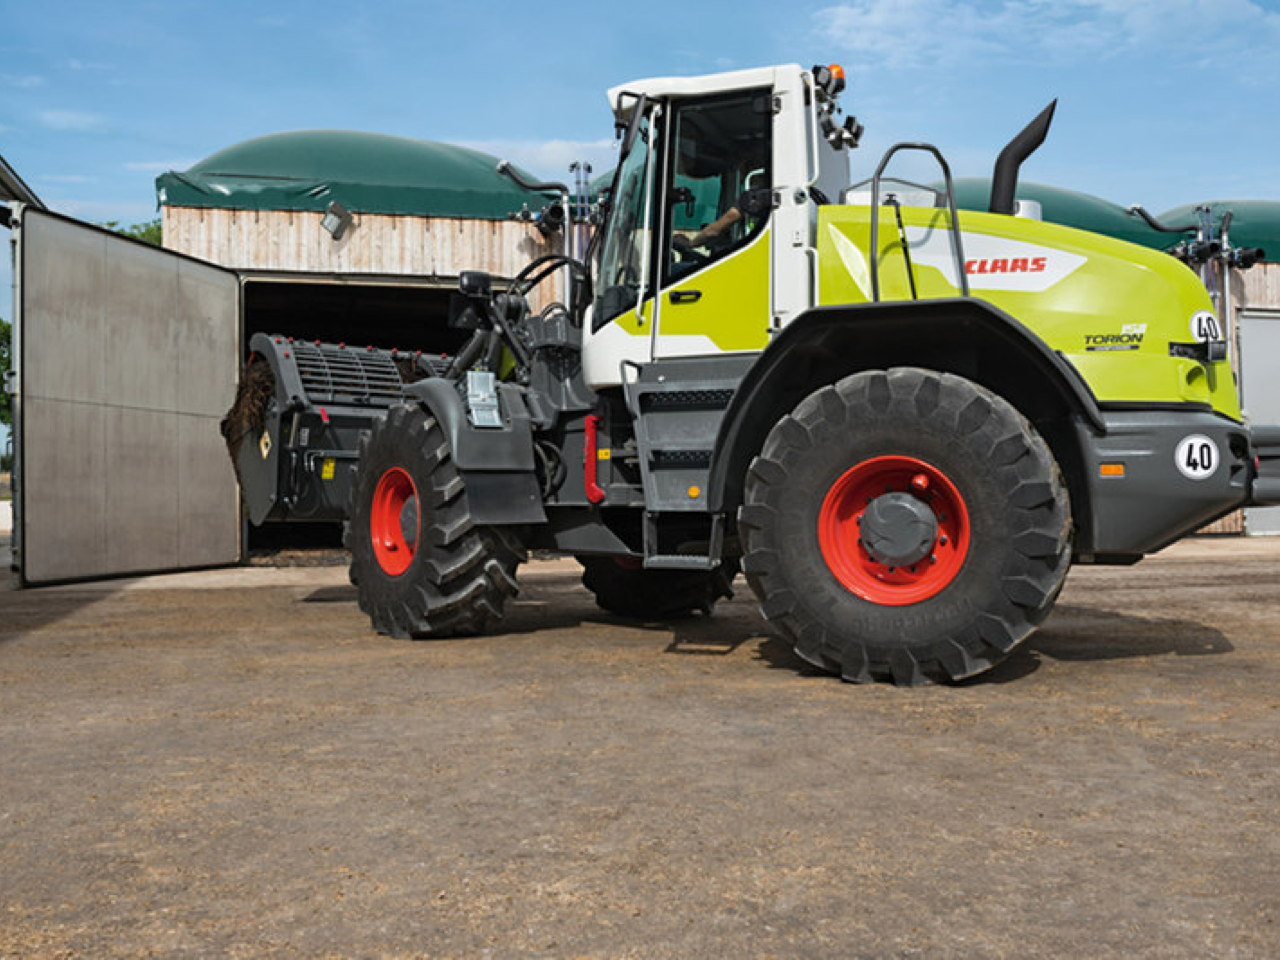 Claas Torion 1914-1177 Torion 1410